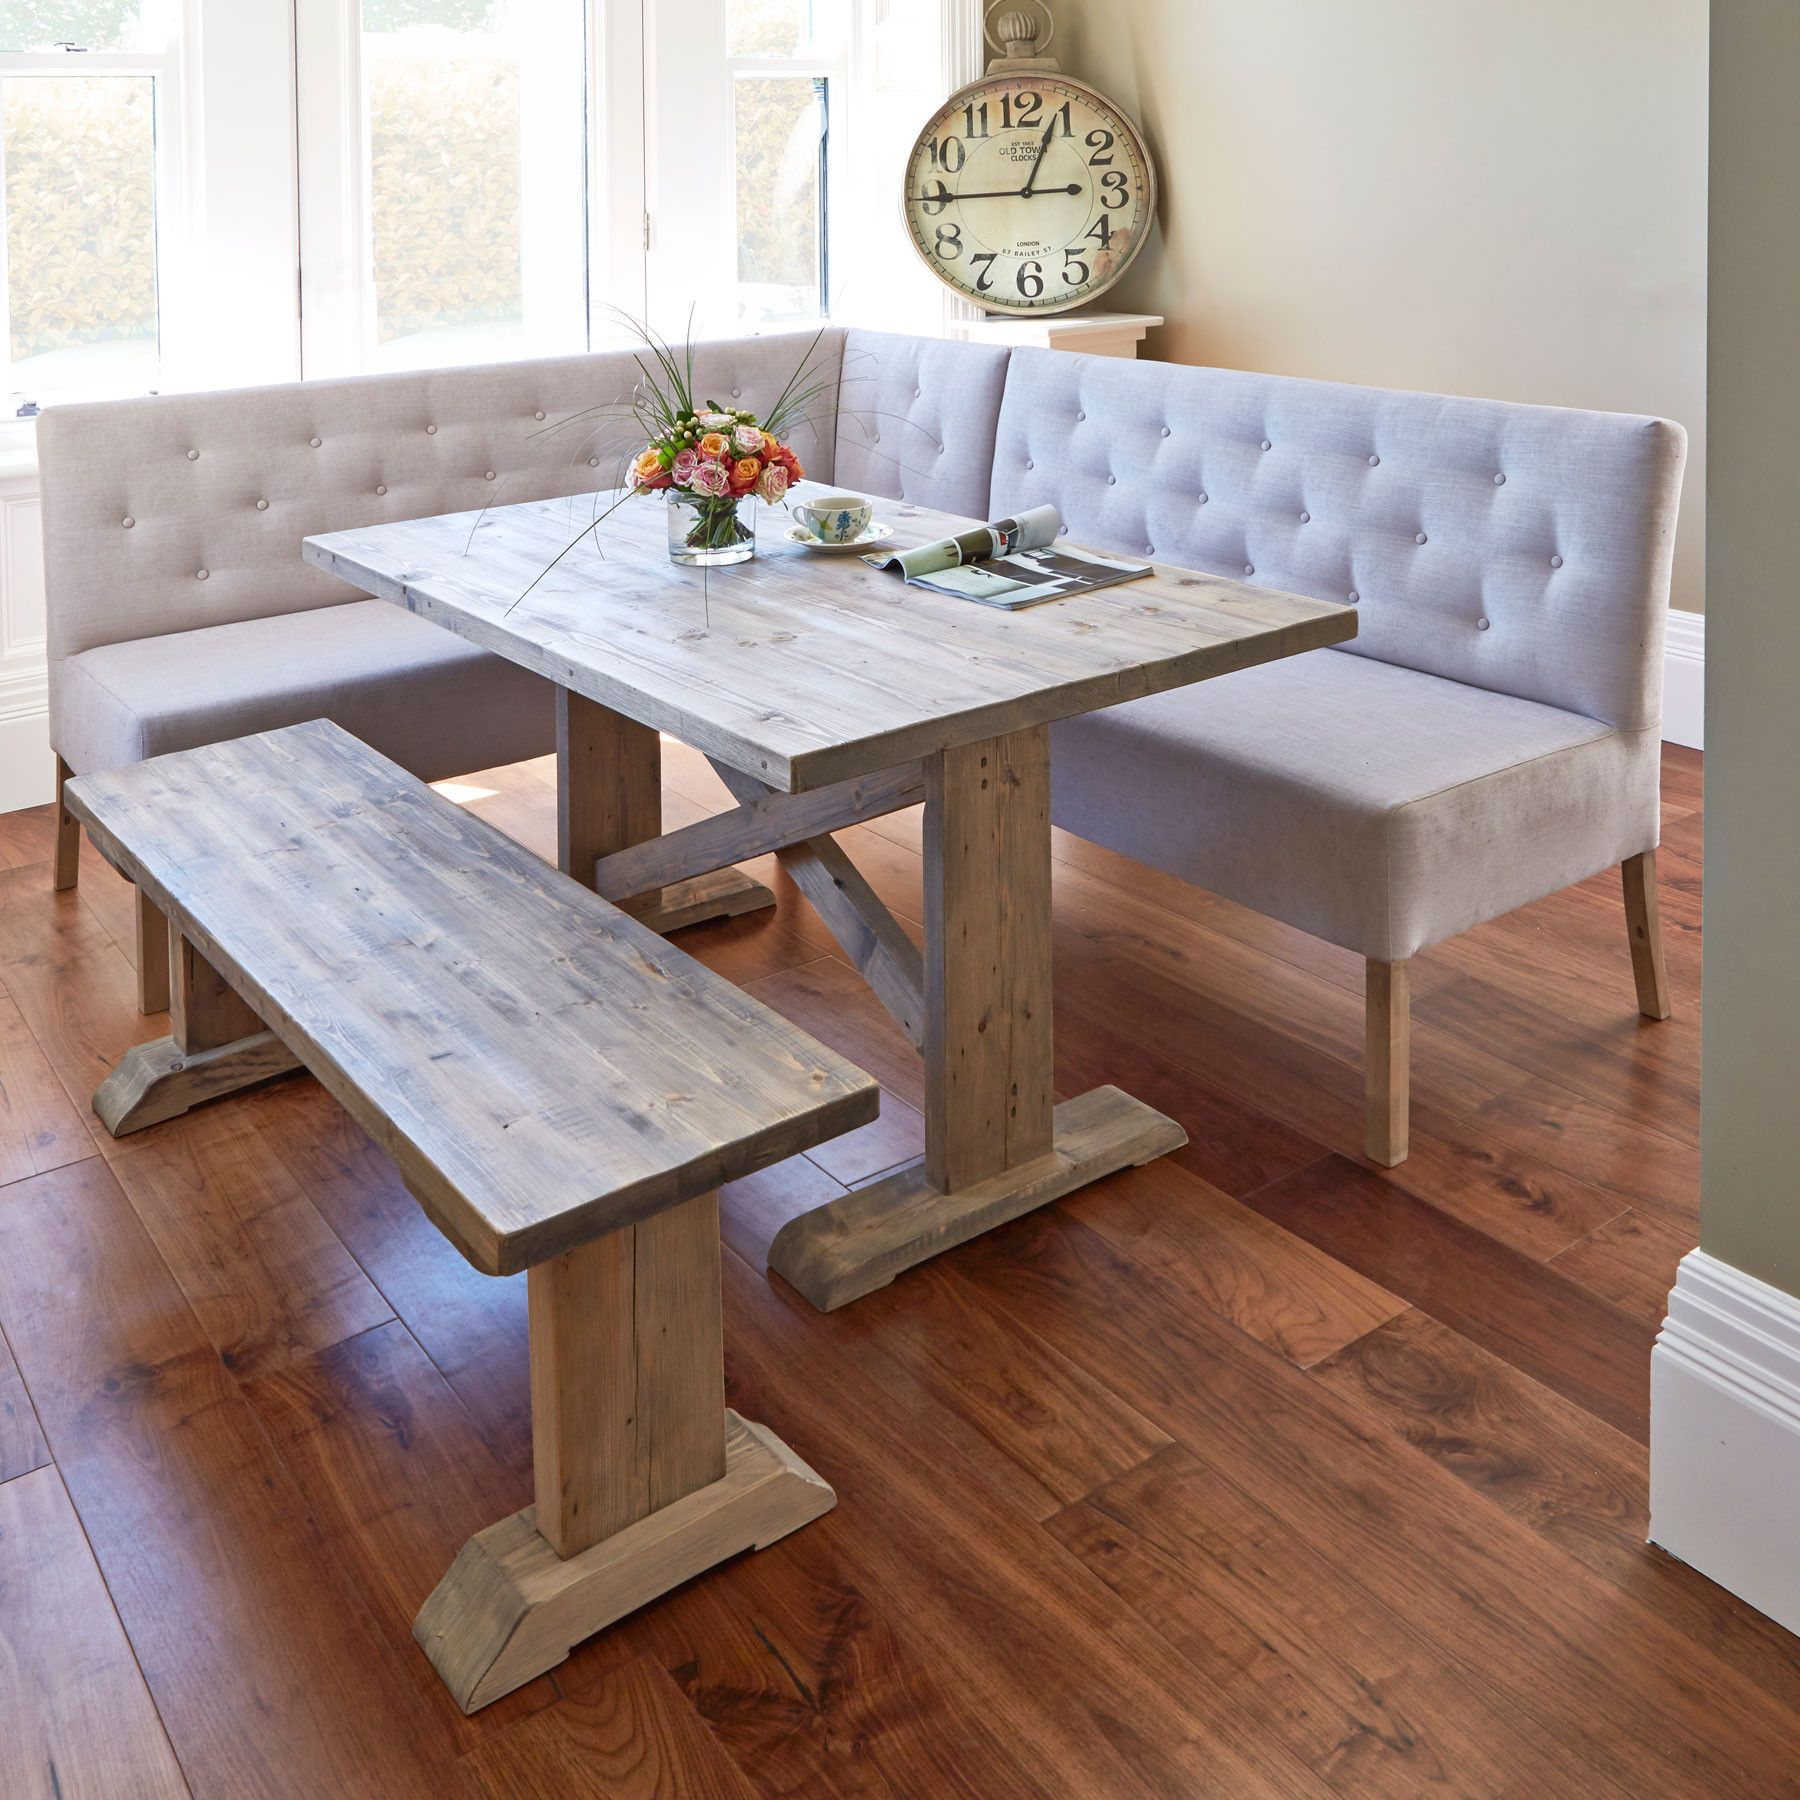 Dining Room Sets With A Bench: Alina Dining Table With Corner And Small Bench